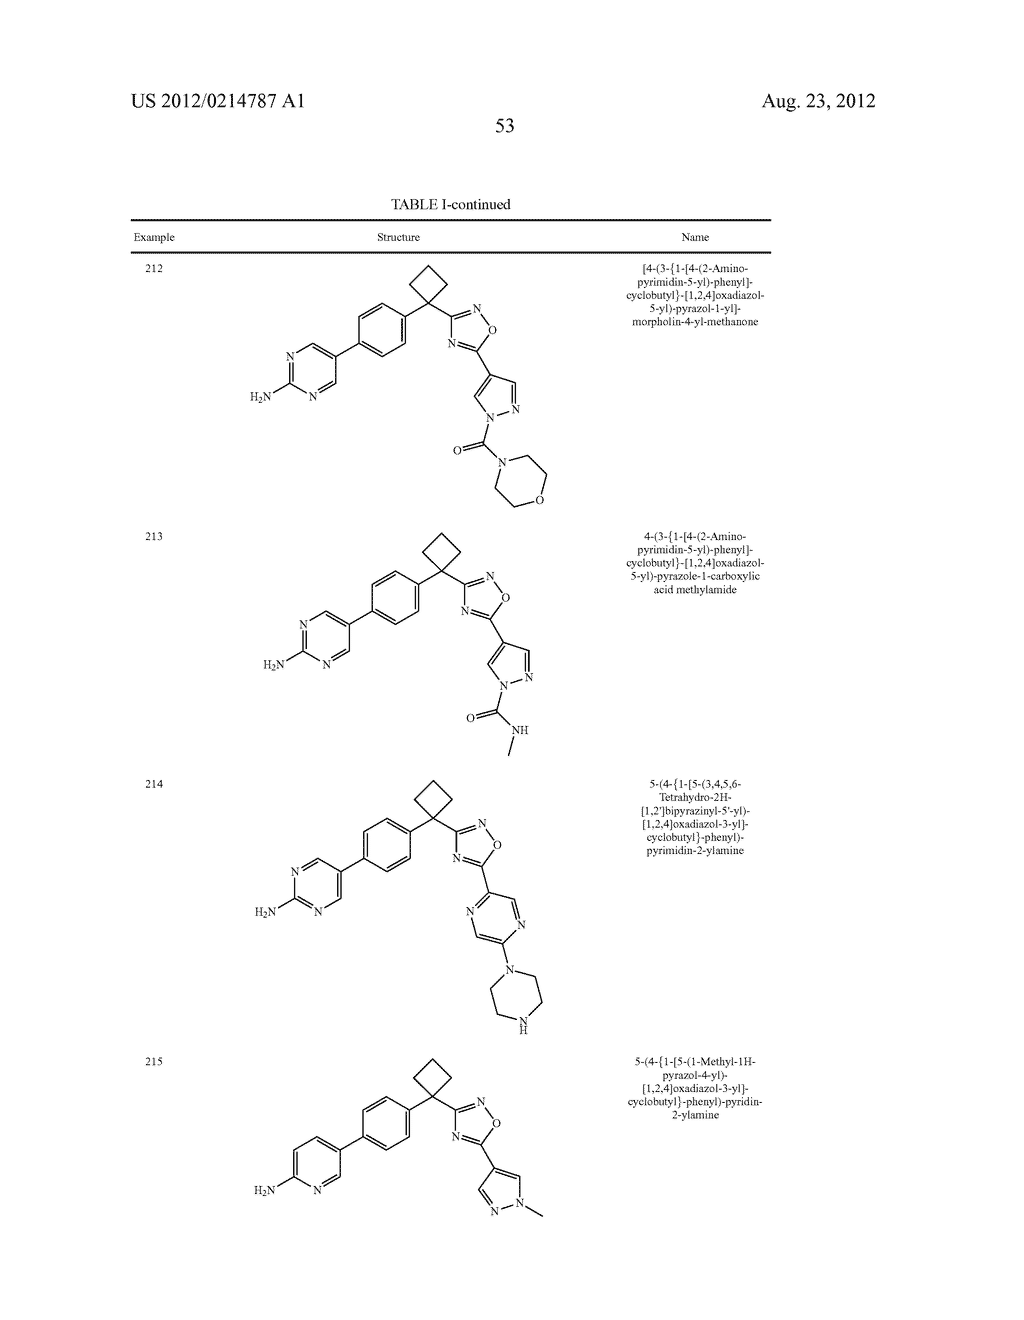 OXADIAZOLE INHIBITORS OF LEUKOTRIENE PRODUCTION - diagram, schematic, and image 54